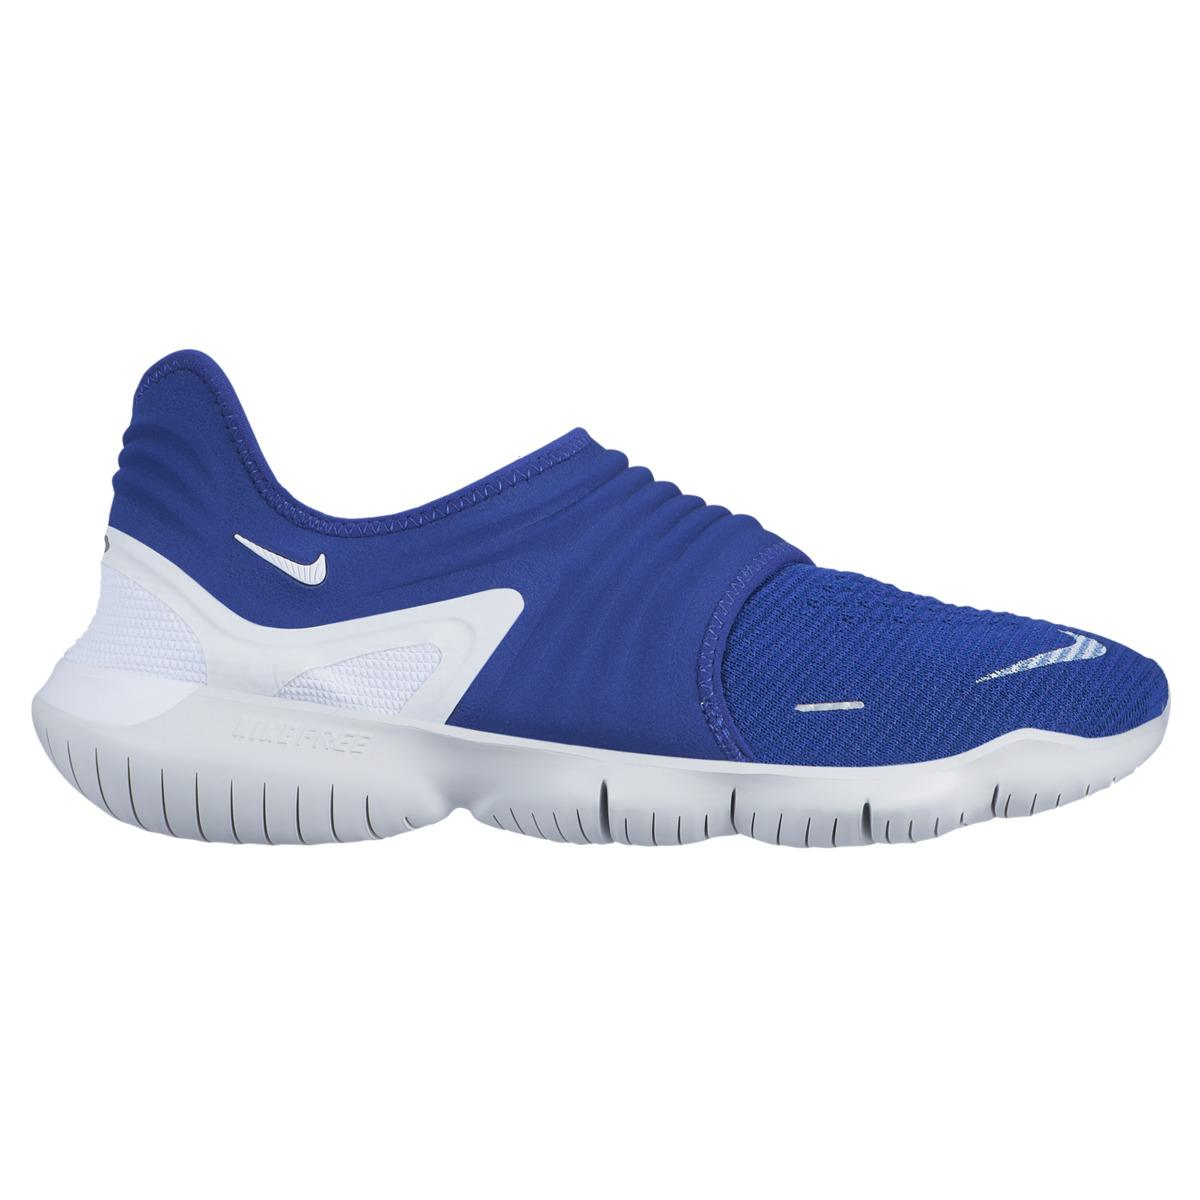 0d97a8366353 Nike. Men s Blue Free Rn Flyknit 3.0 Running Shoes. £112 From El Corte  Ingles